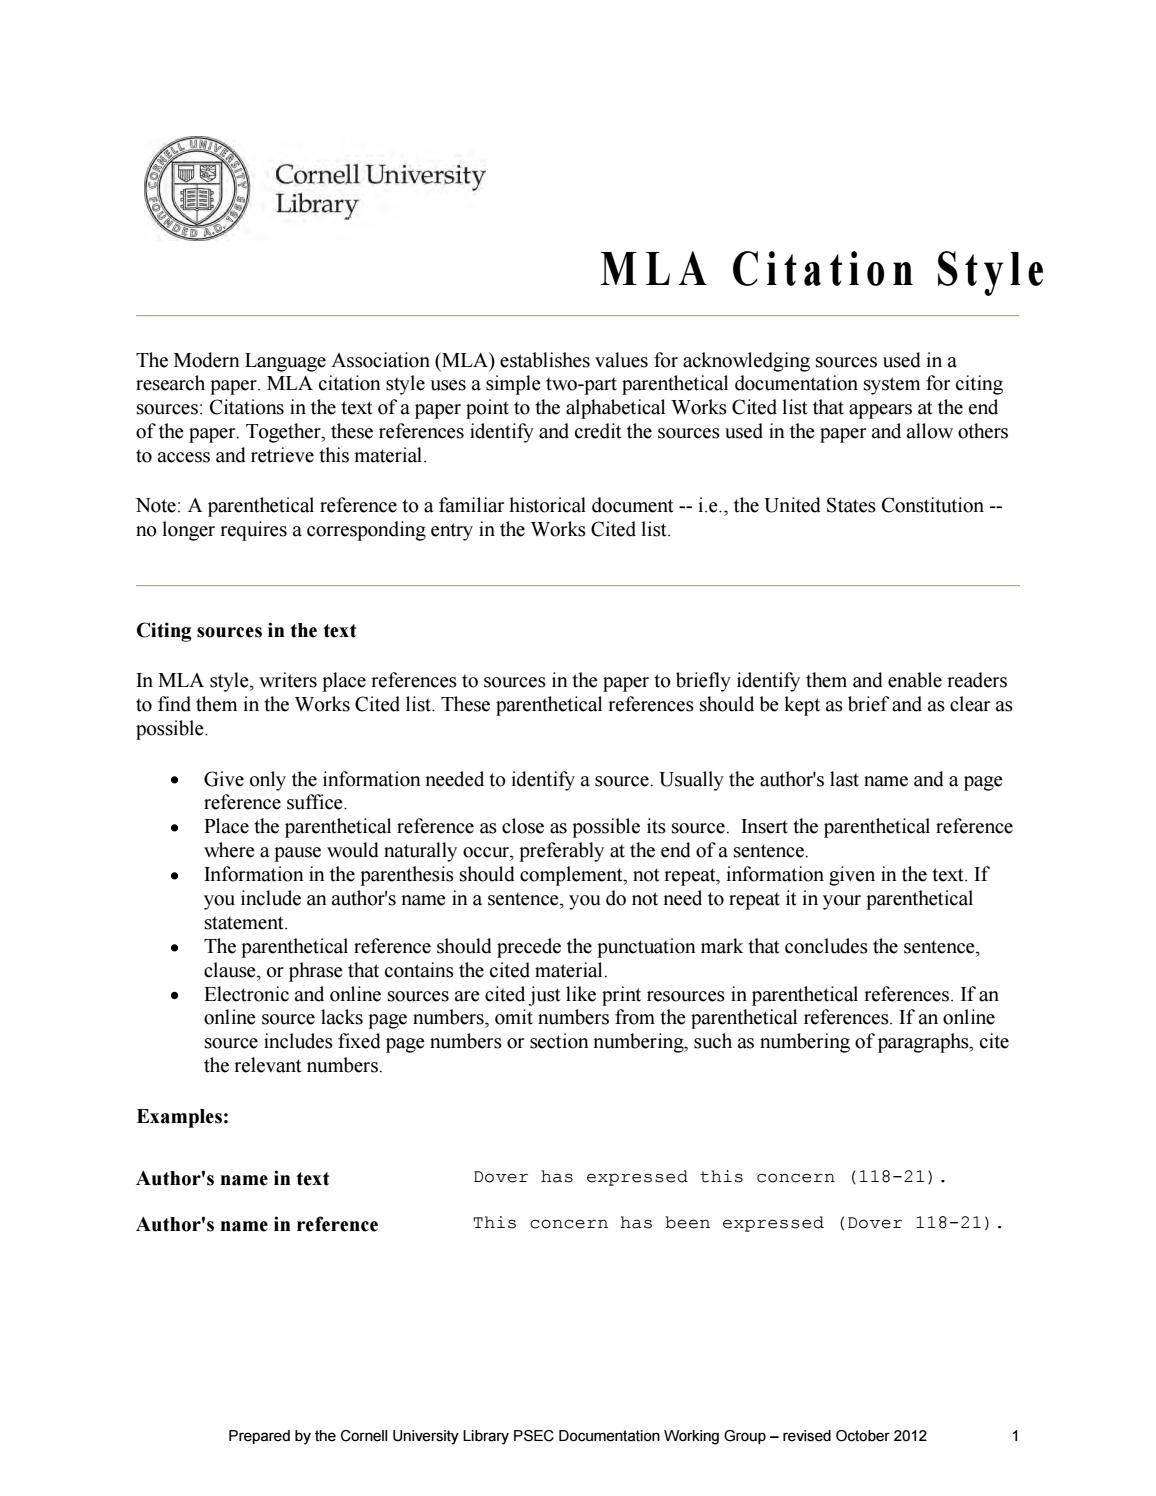 mla citation rules by chris mercer